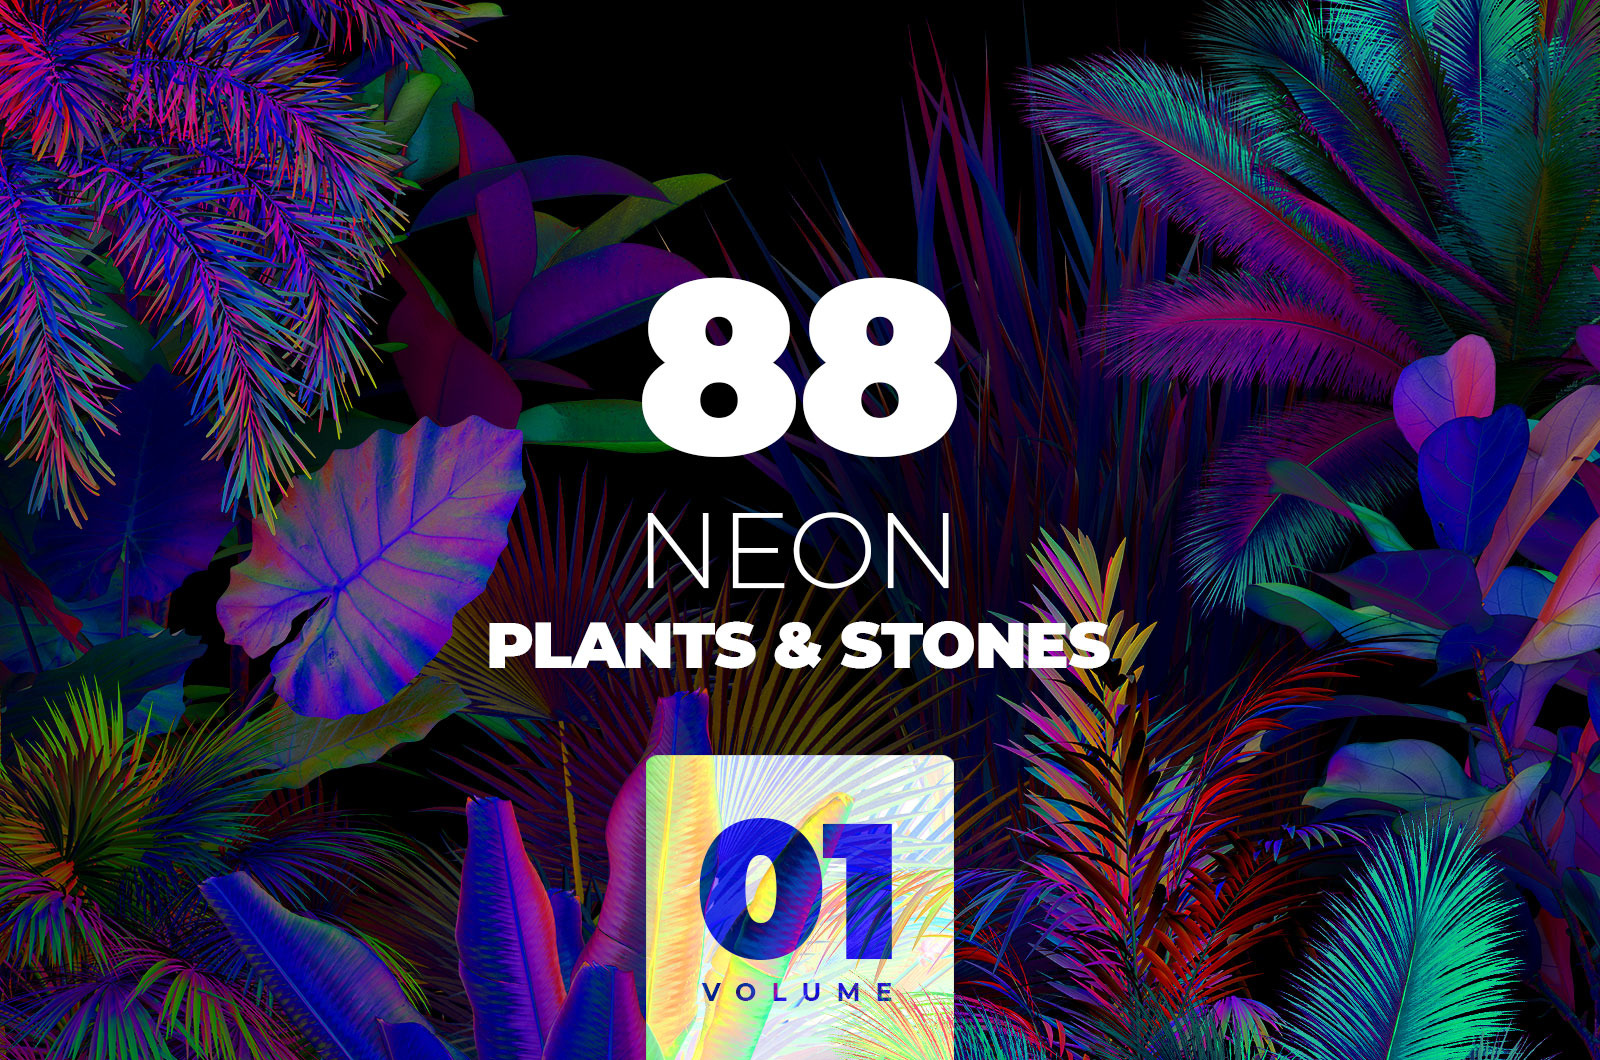 NEON plants & stones collection #01